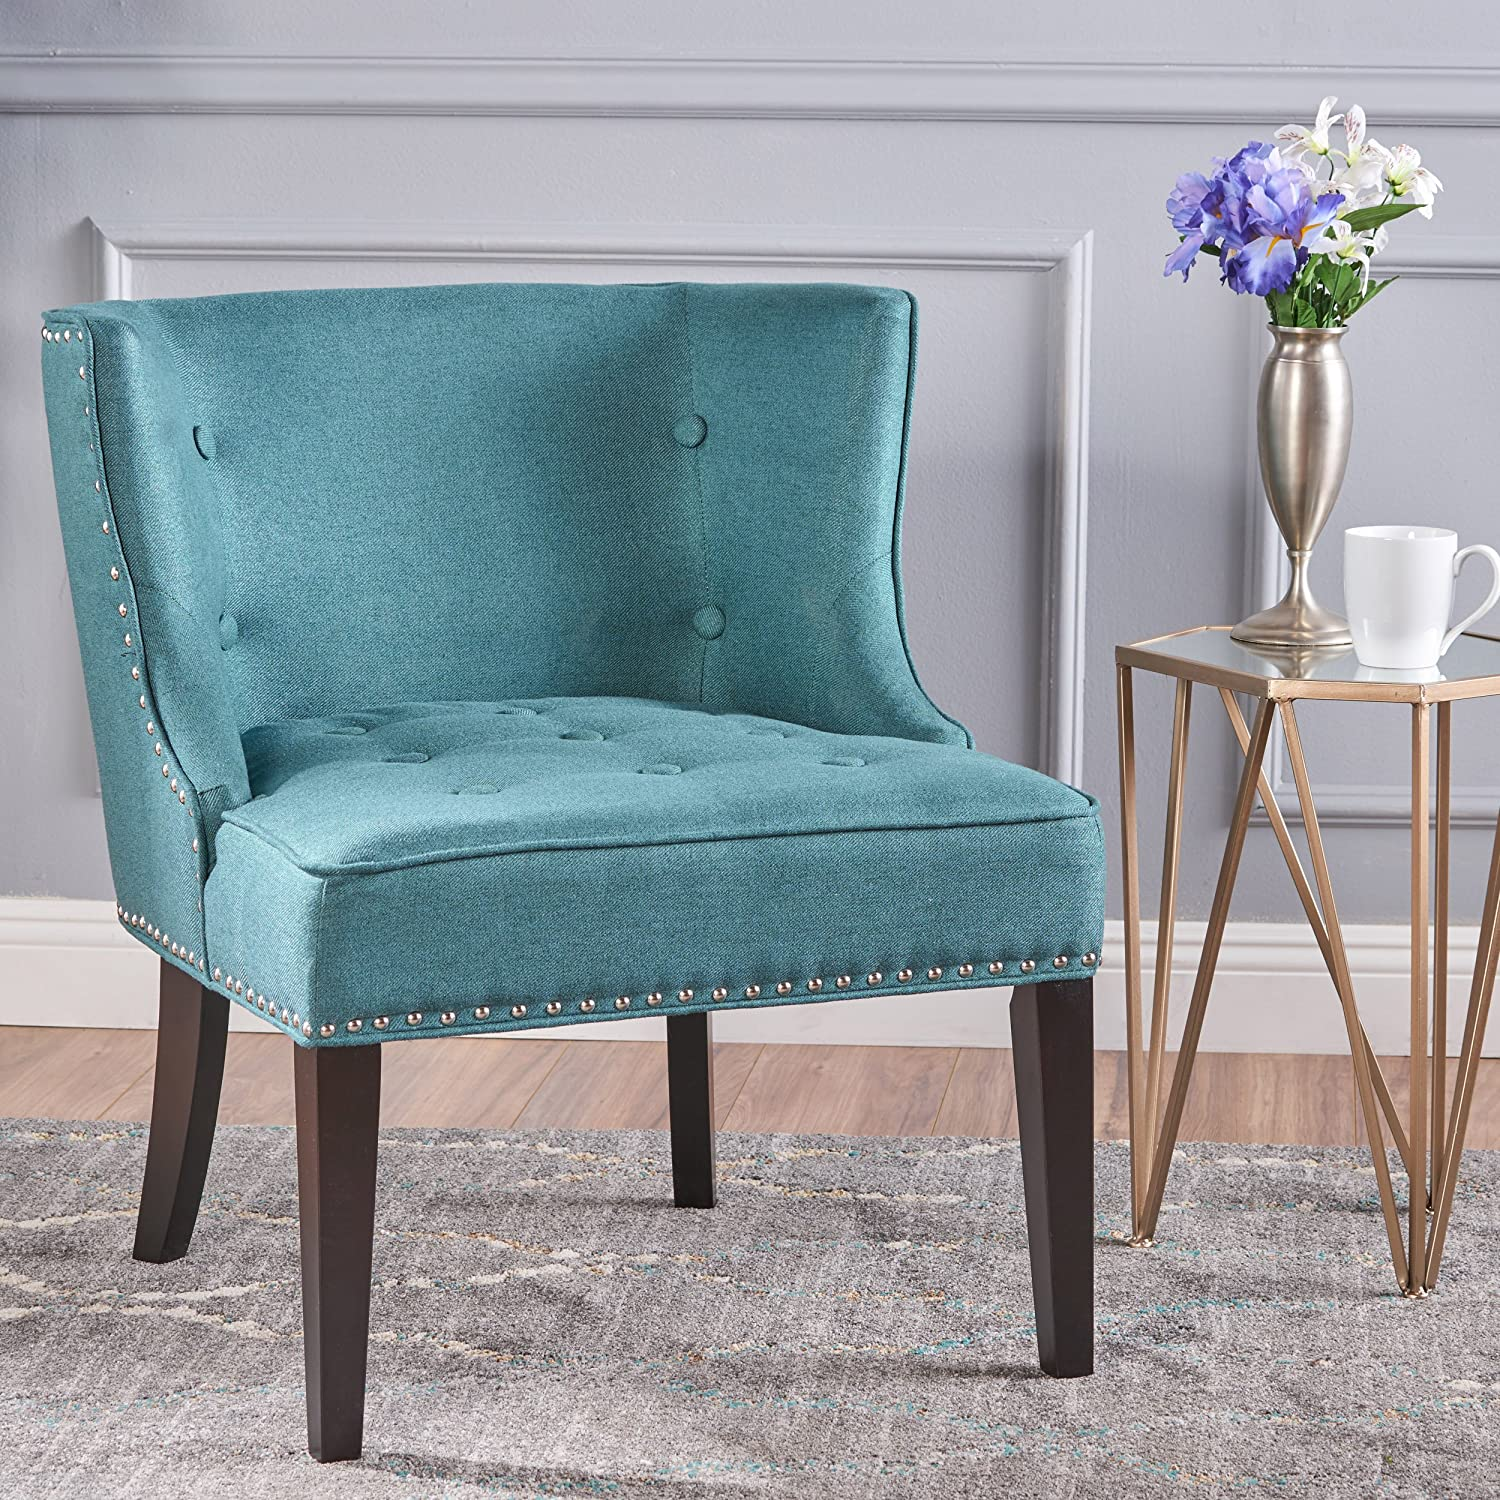 Christopher Knight Home 301256 Aria Occasional Chair Wing Back Nail Head Accents Button Tufted Corded Fabric in Dark Teal